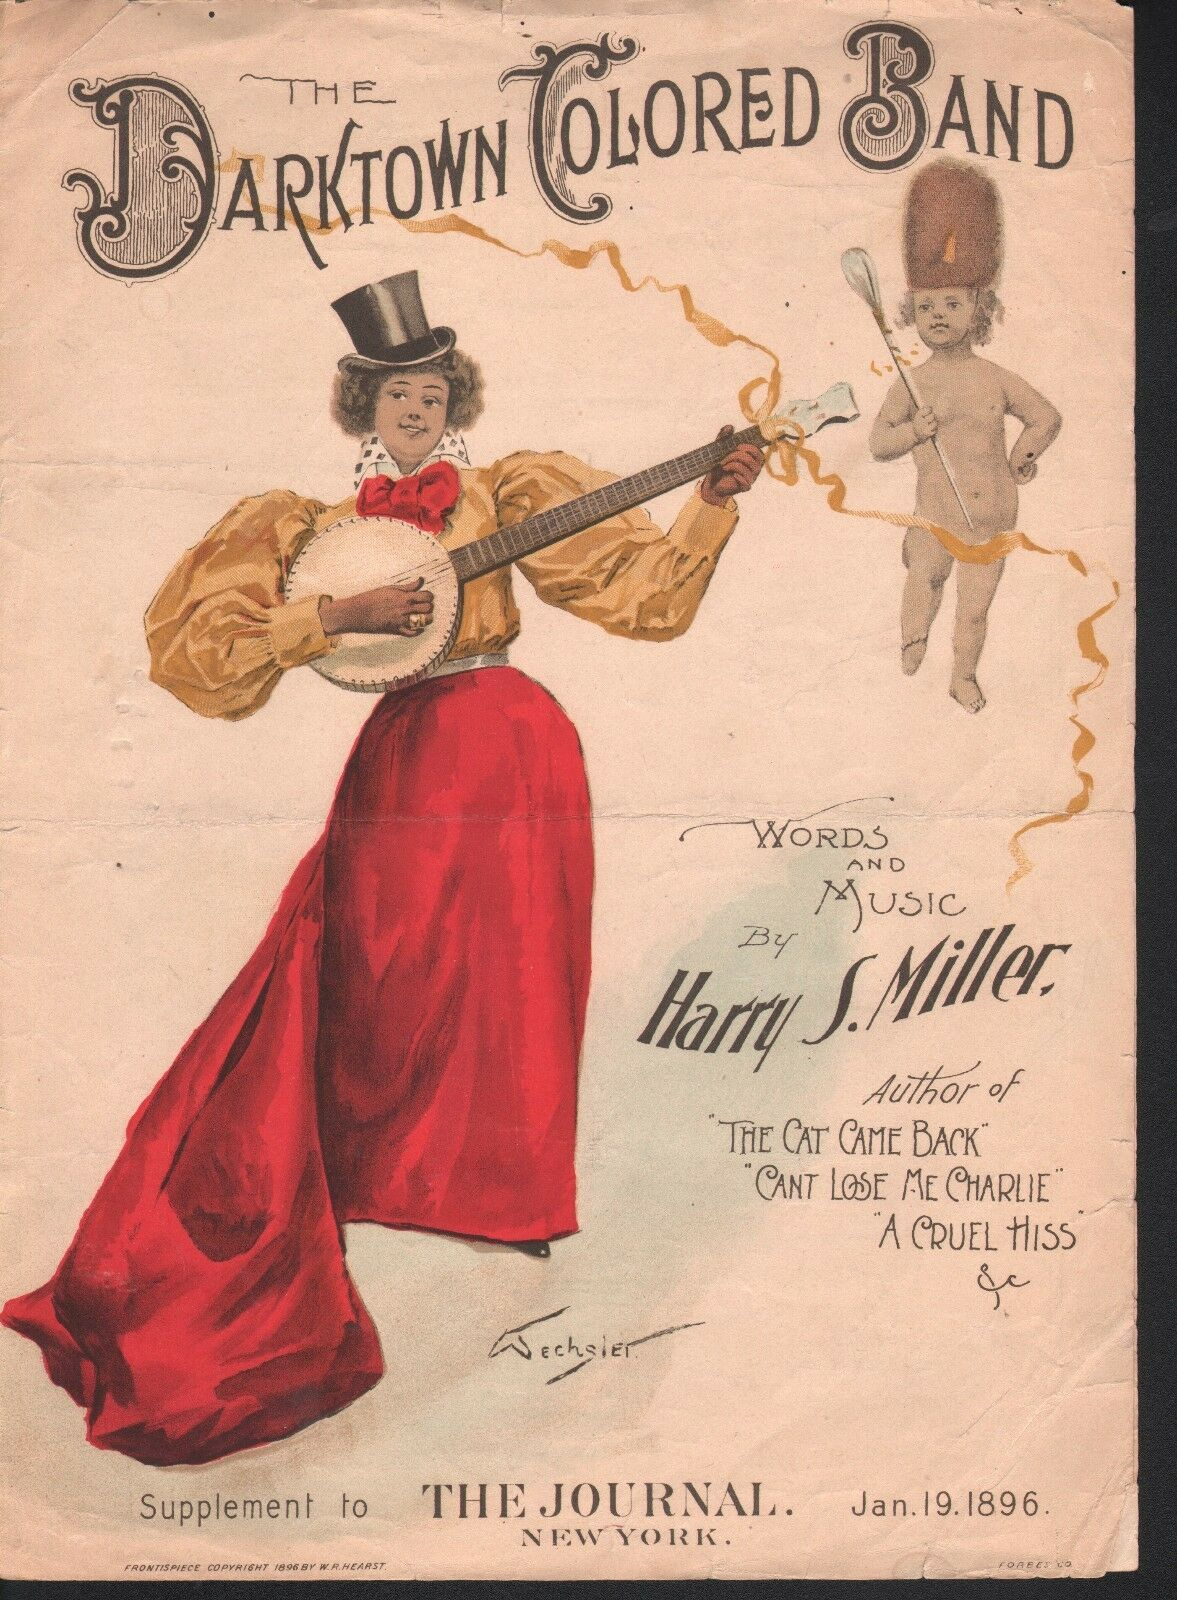 The Darktown Farbeed Band Supp to the New York Journal Jan 19, 1896 Sheet Music